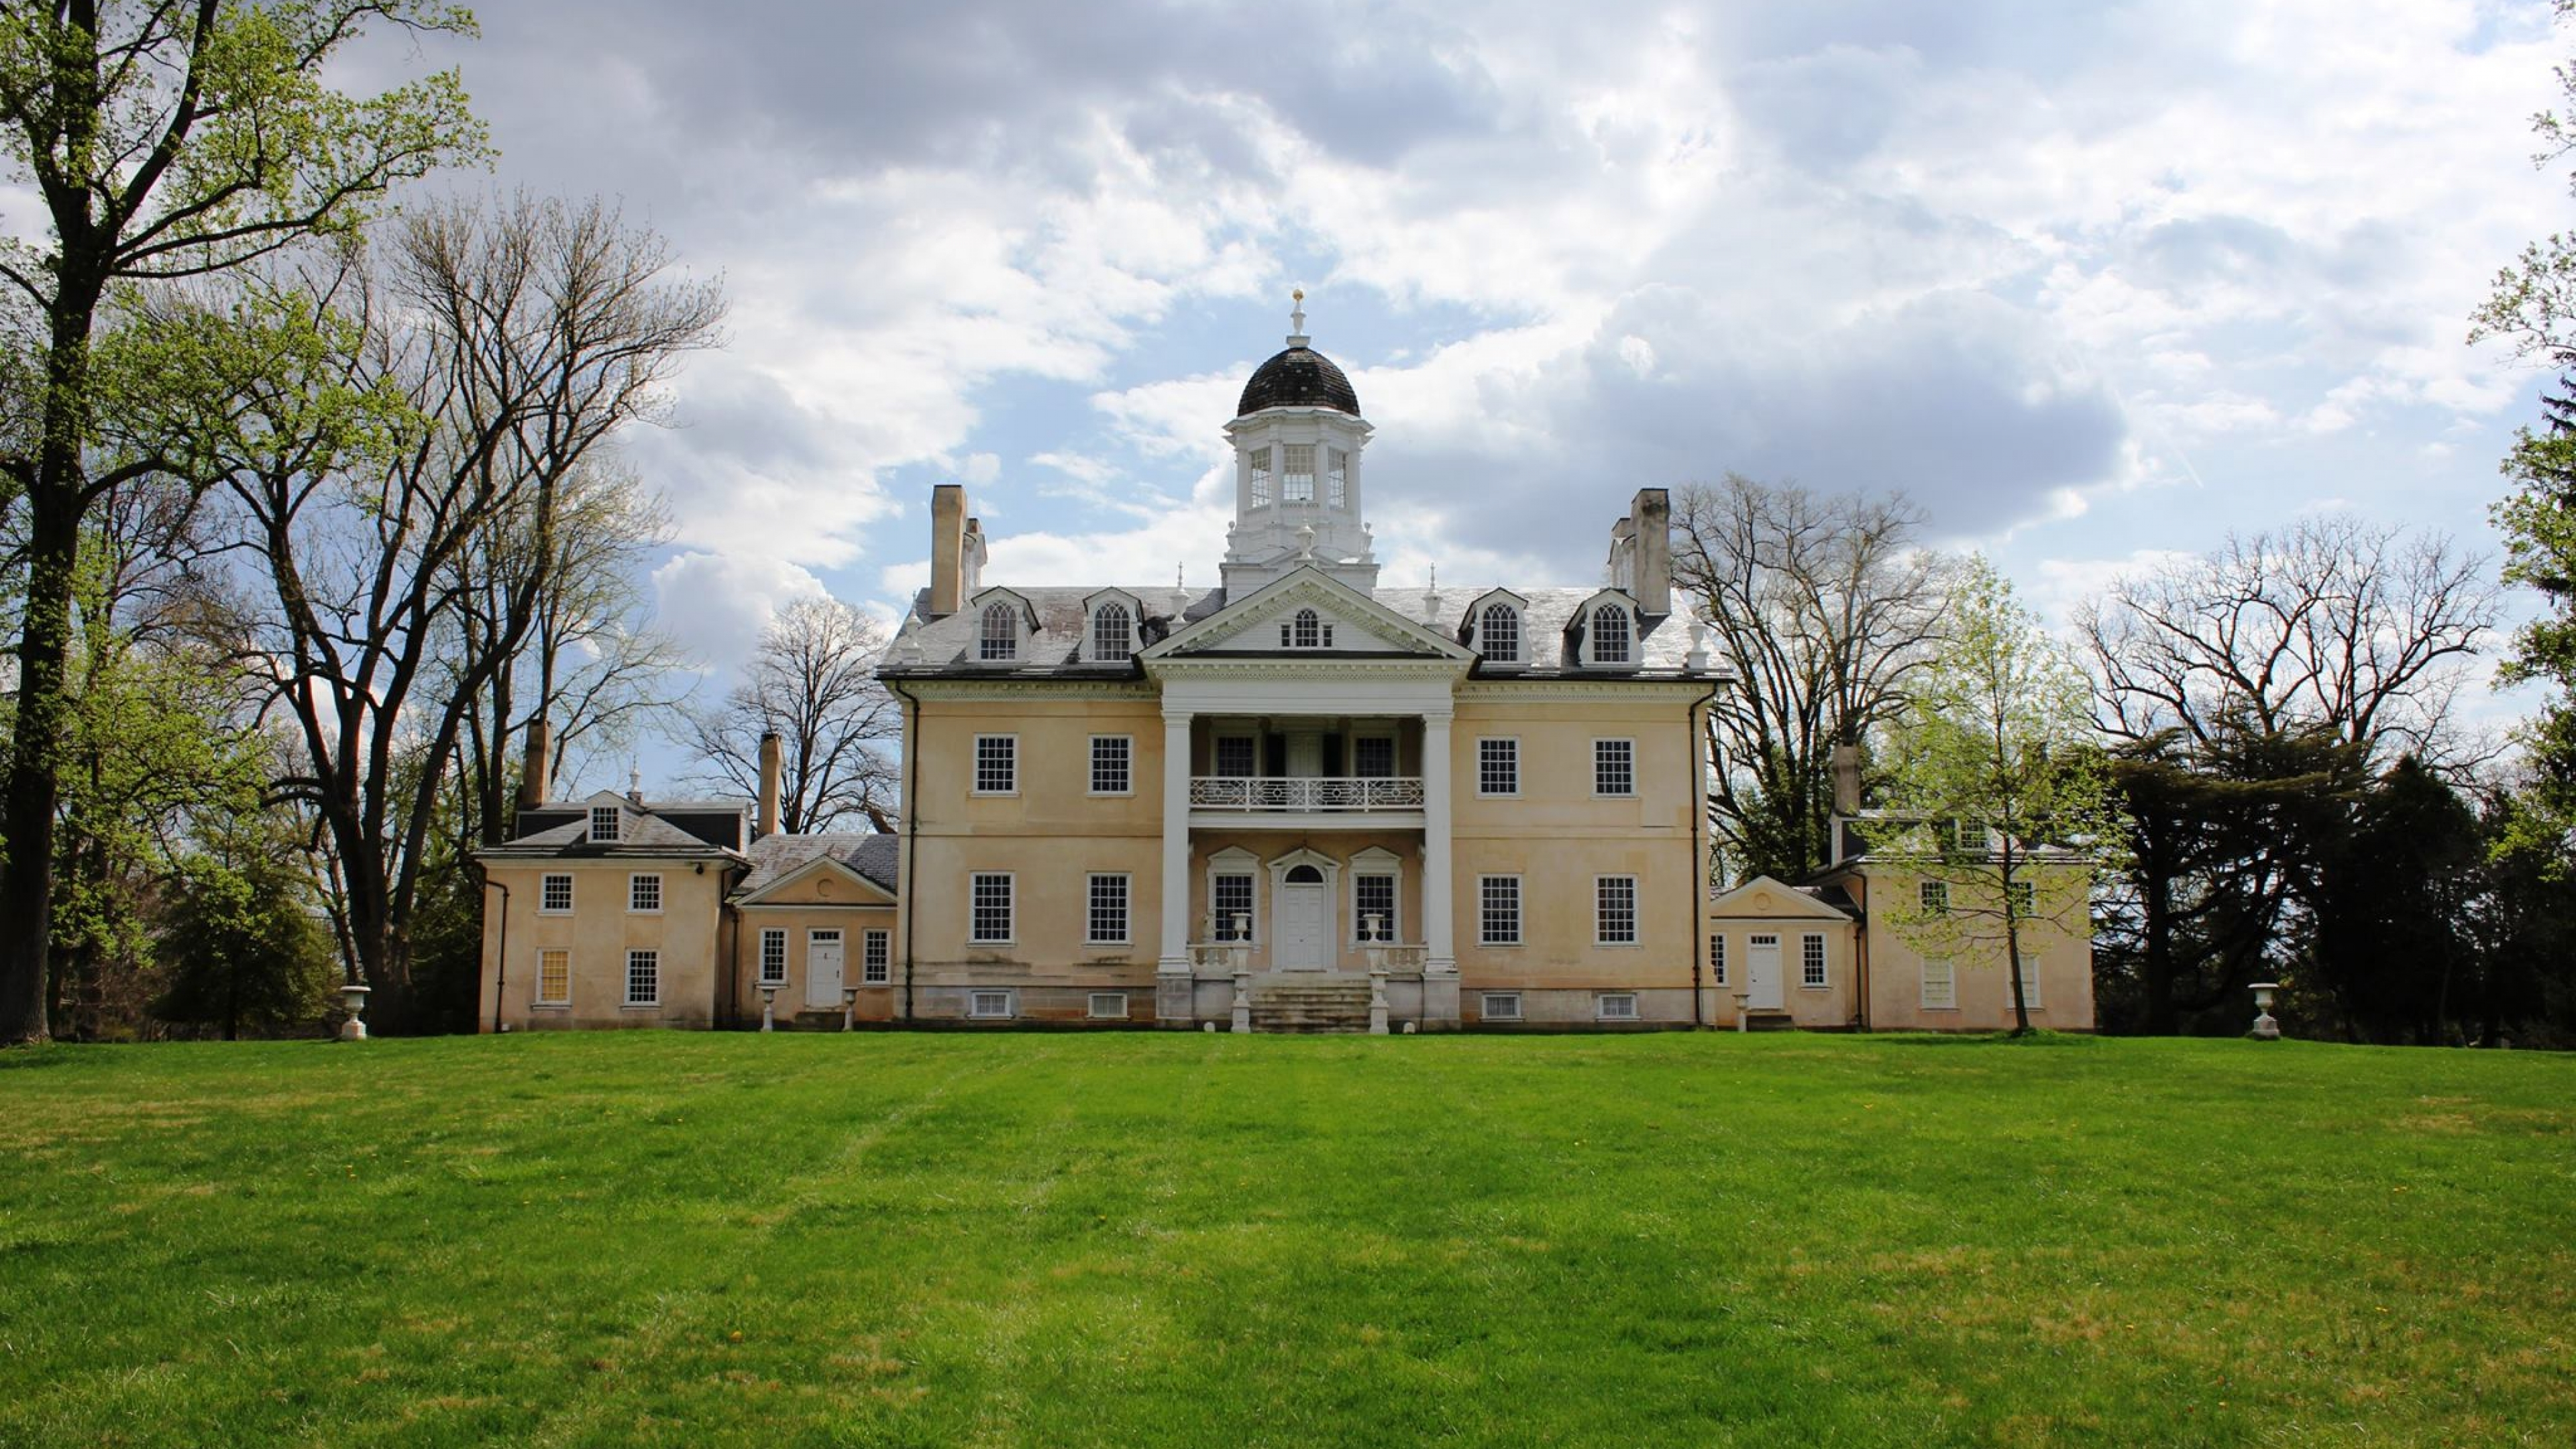 Hampton national historic site - National Parks Bring History To Life